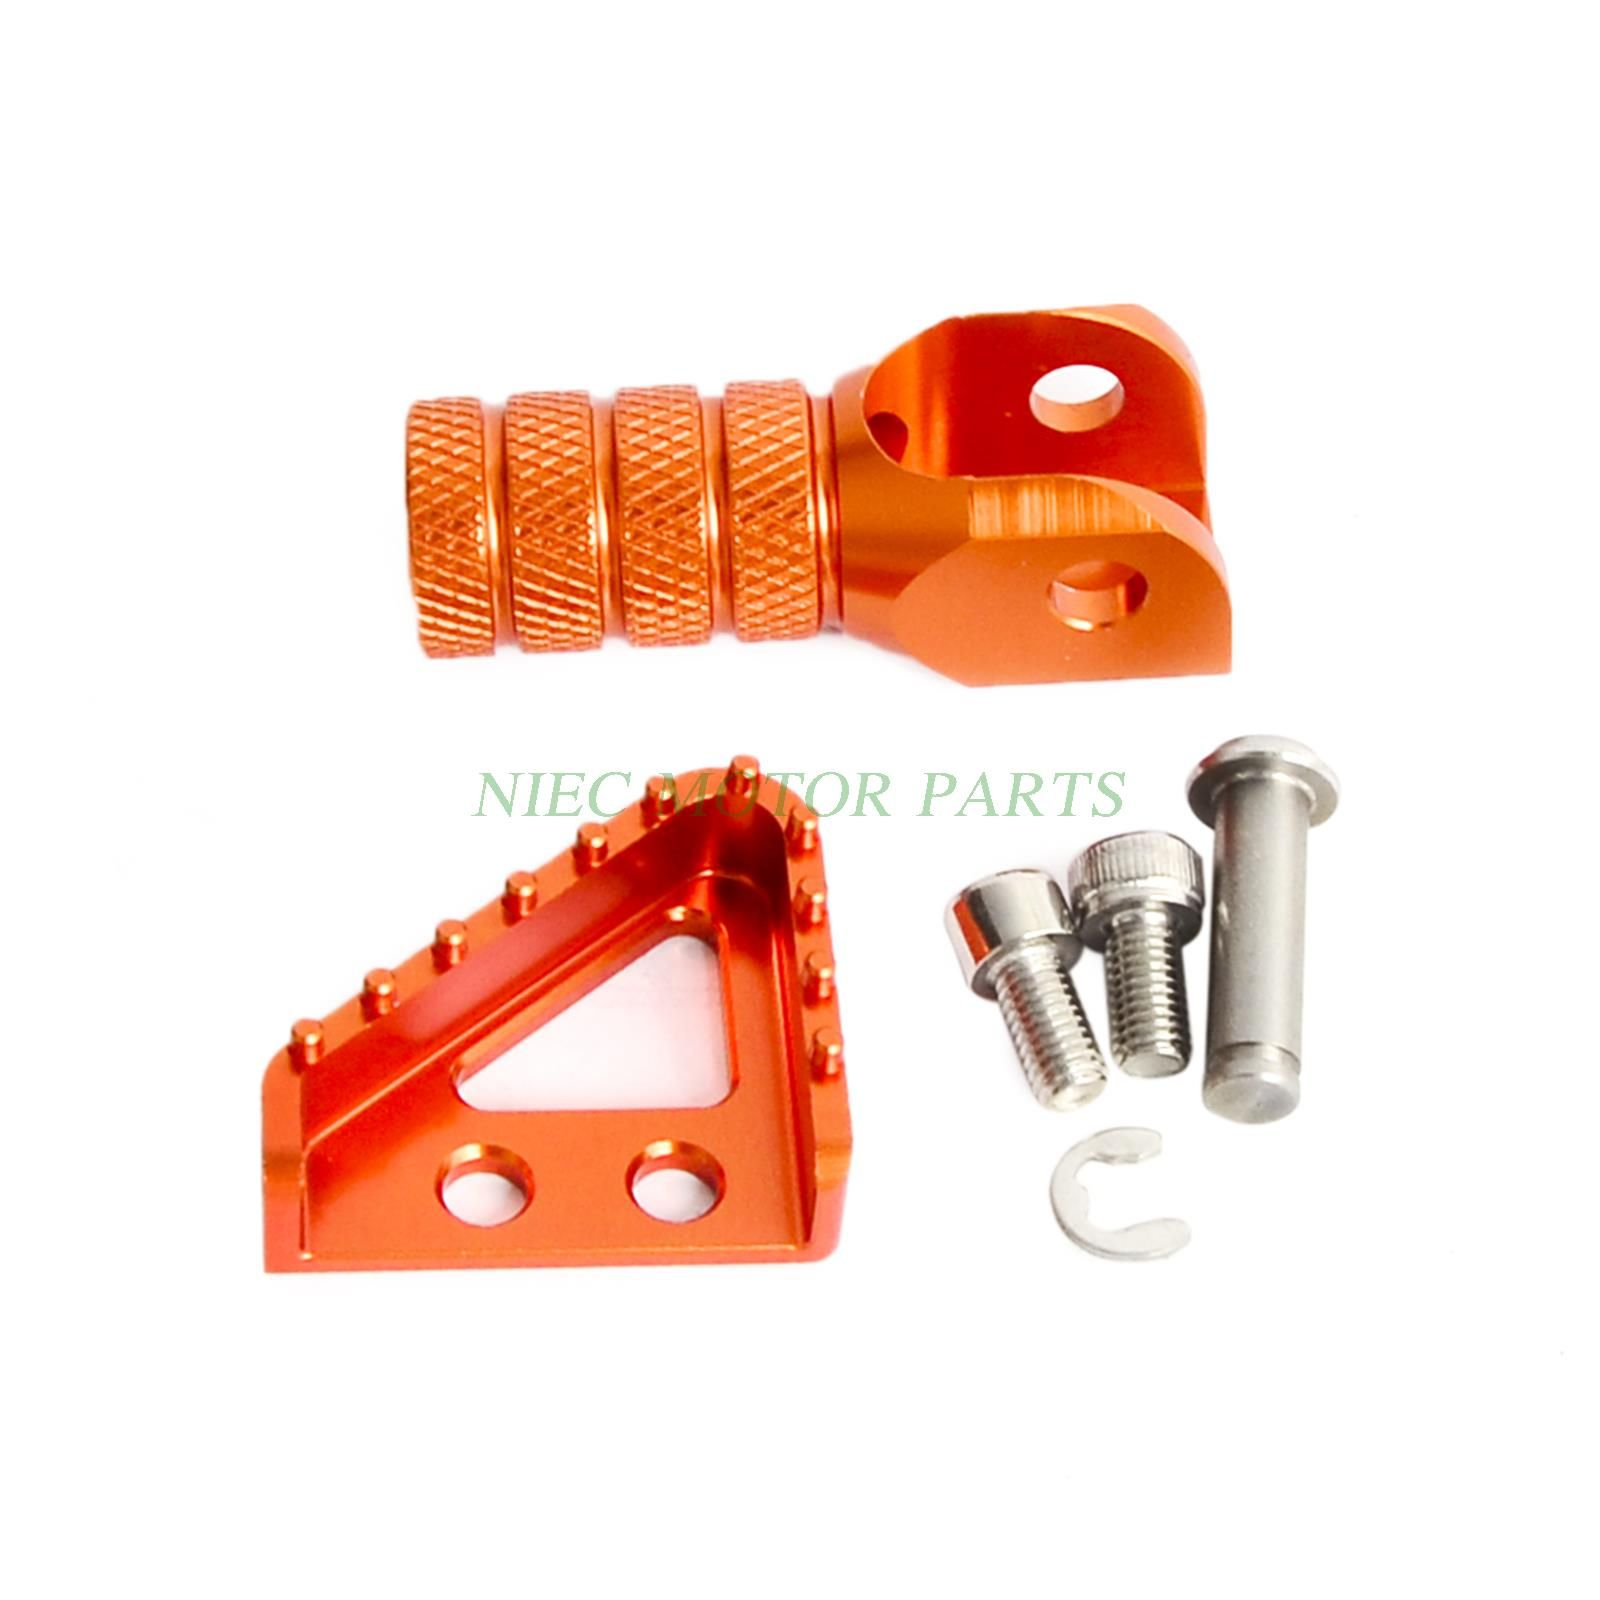 Billet Rear Brake Pedal Step Tips And Gear Shifter Lever Tip Replacement For KTM SX SX-F EXC EXC-F XCW XCF SMR SMC